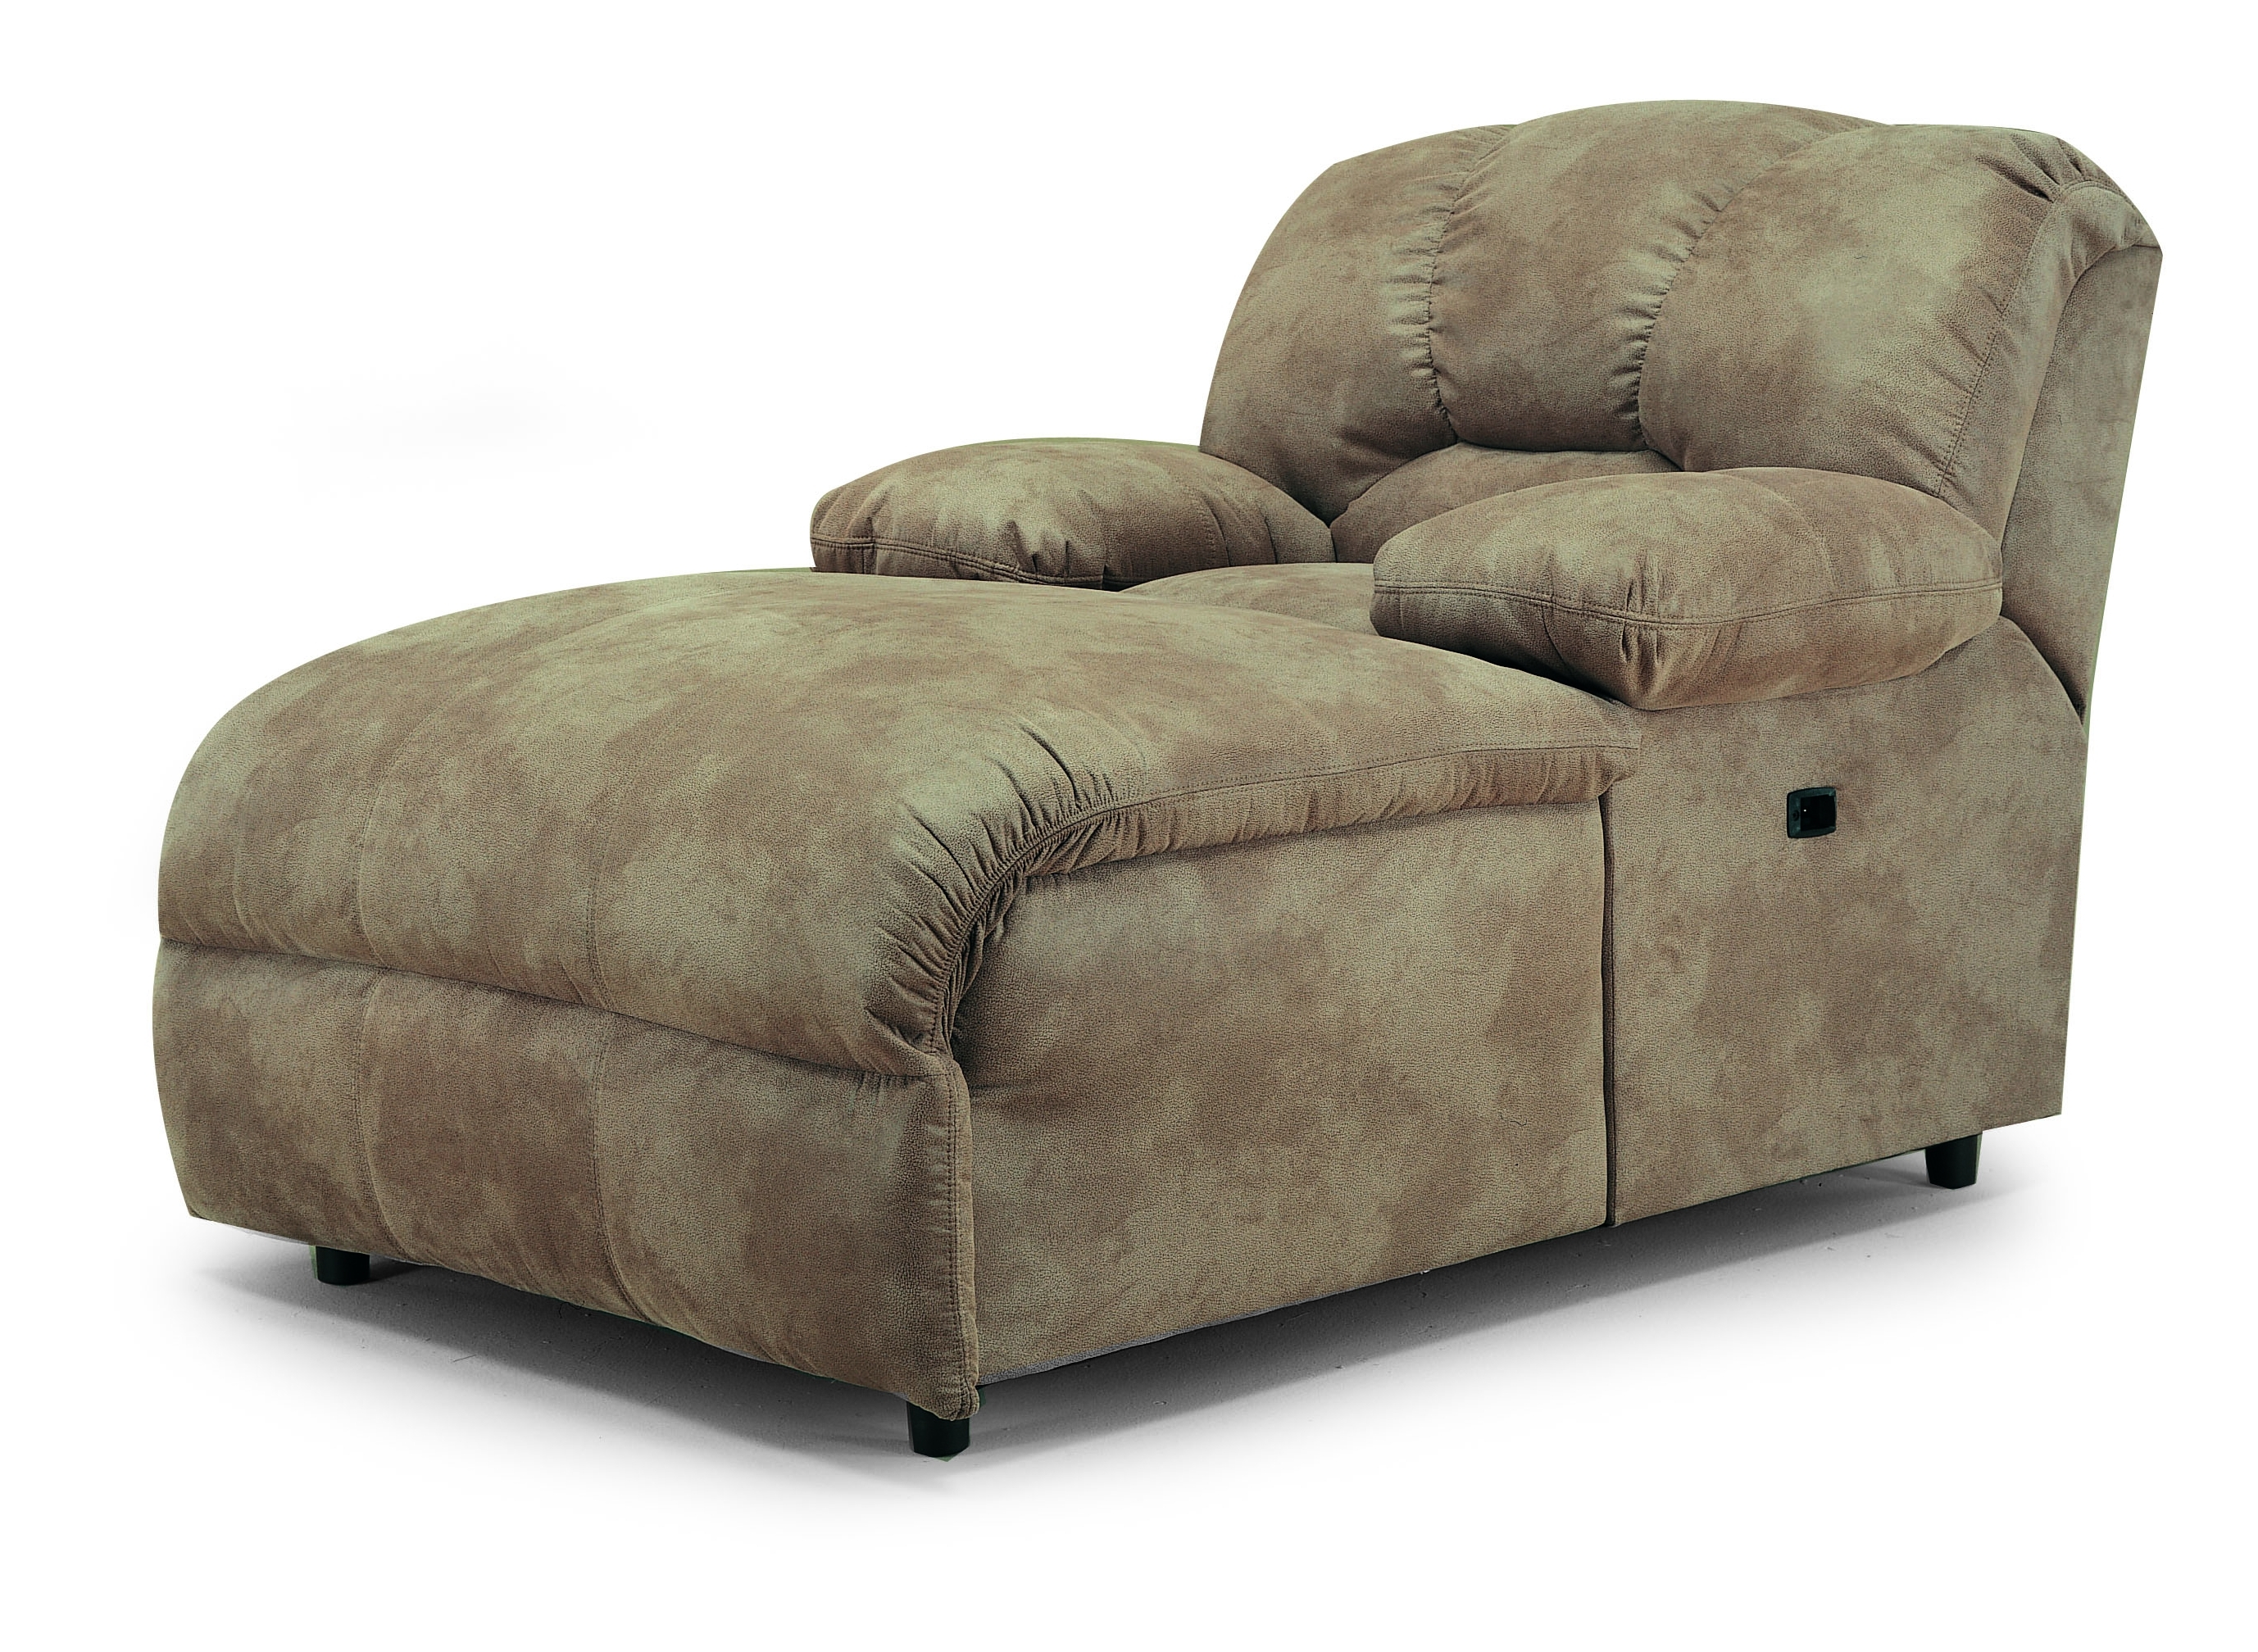 Chaise Recliner Chairs In Most Current Popular Of Reclining Chaise Lounge With Recliner Chaise Lounge My (View 1 of 15)